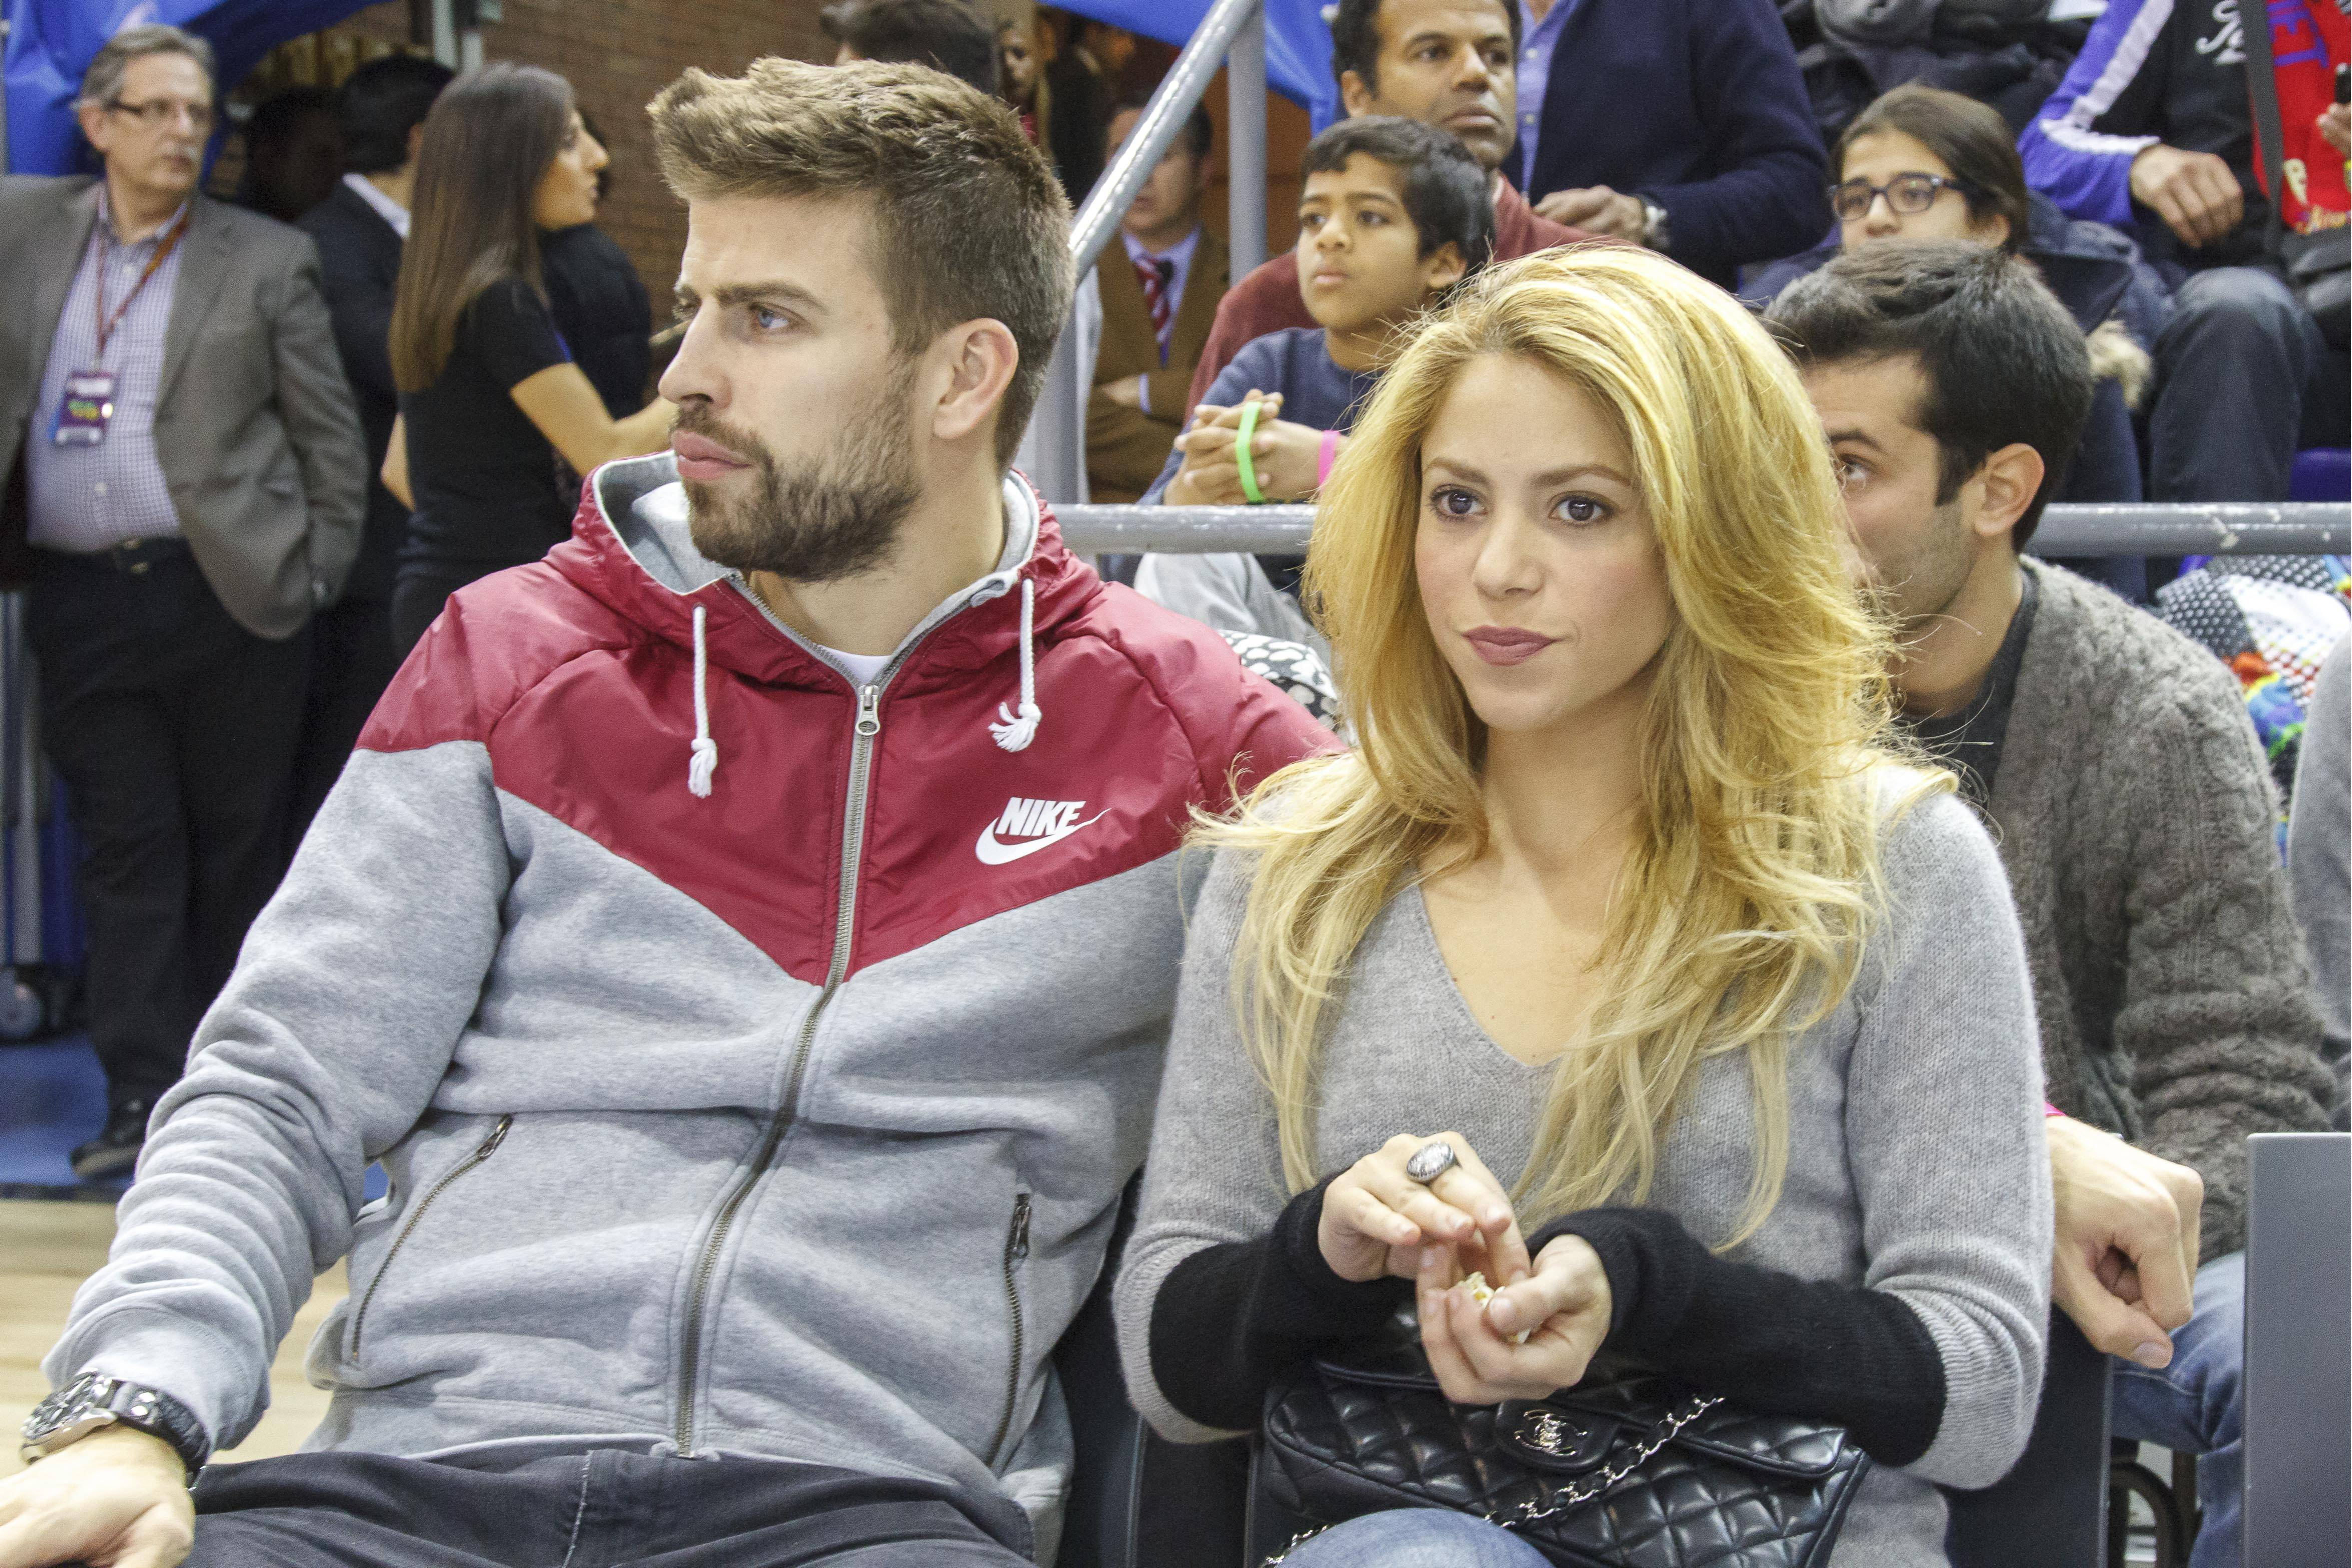 Shakira and Gerard Pique attend a Basketball match in Barcelona